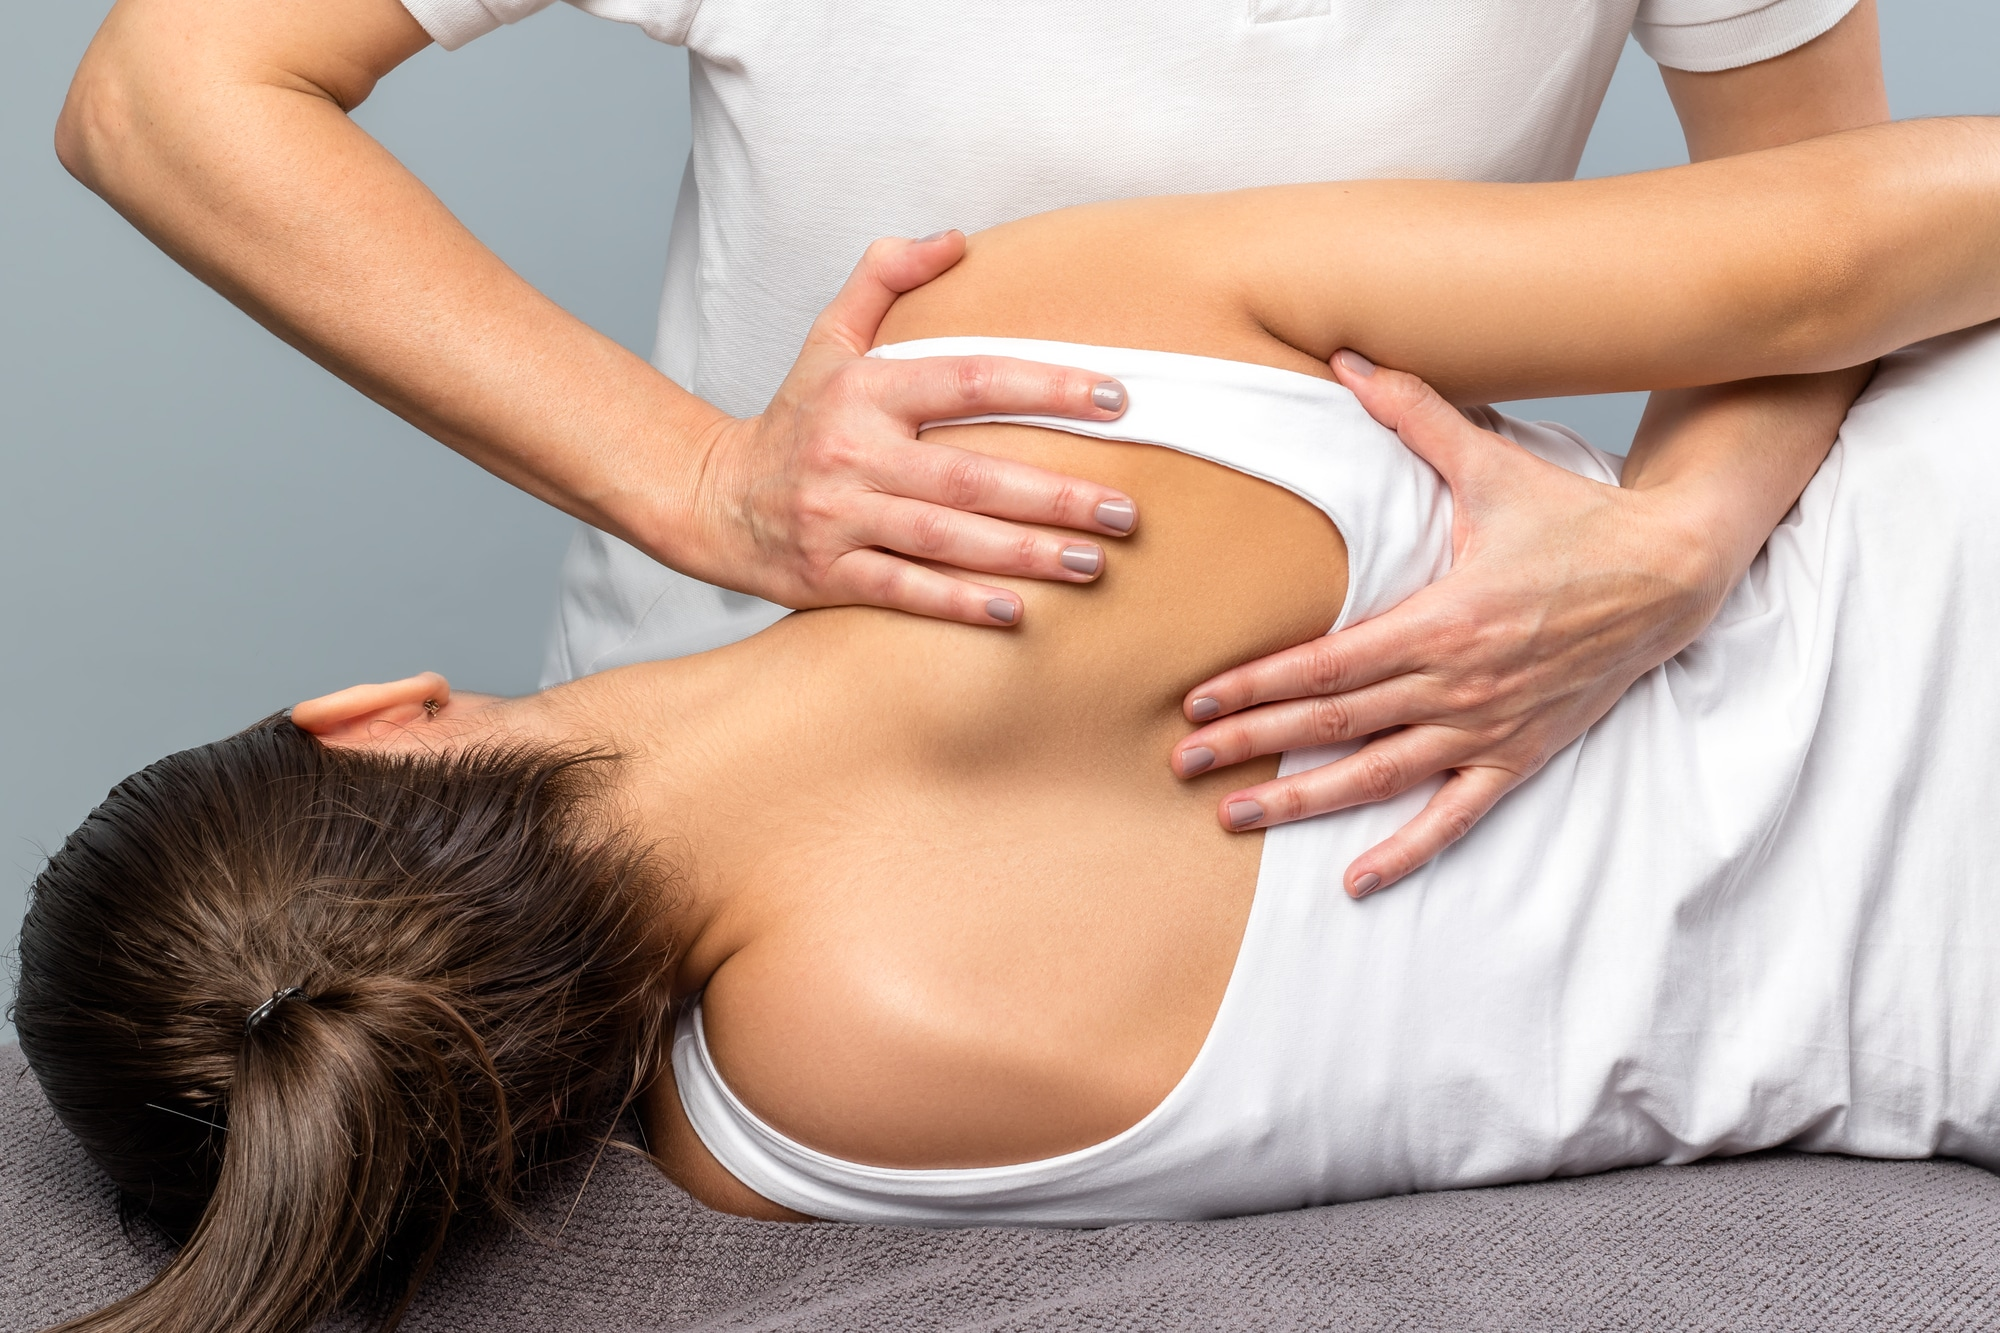 6 Ways To Maximize Your Chiropractic Care Benefits